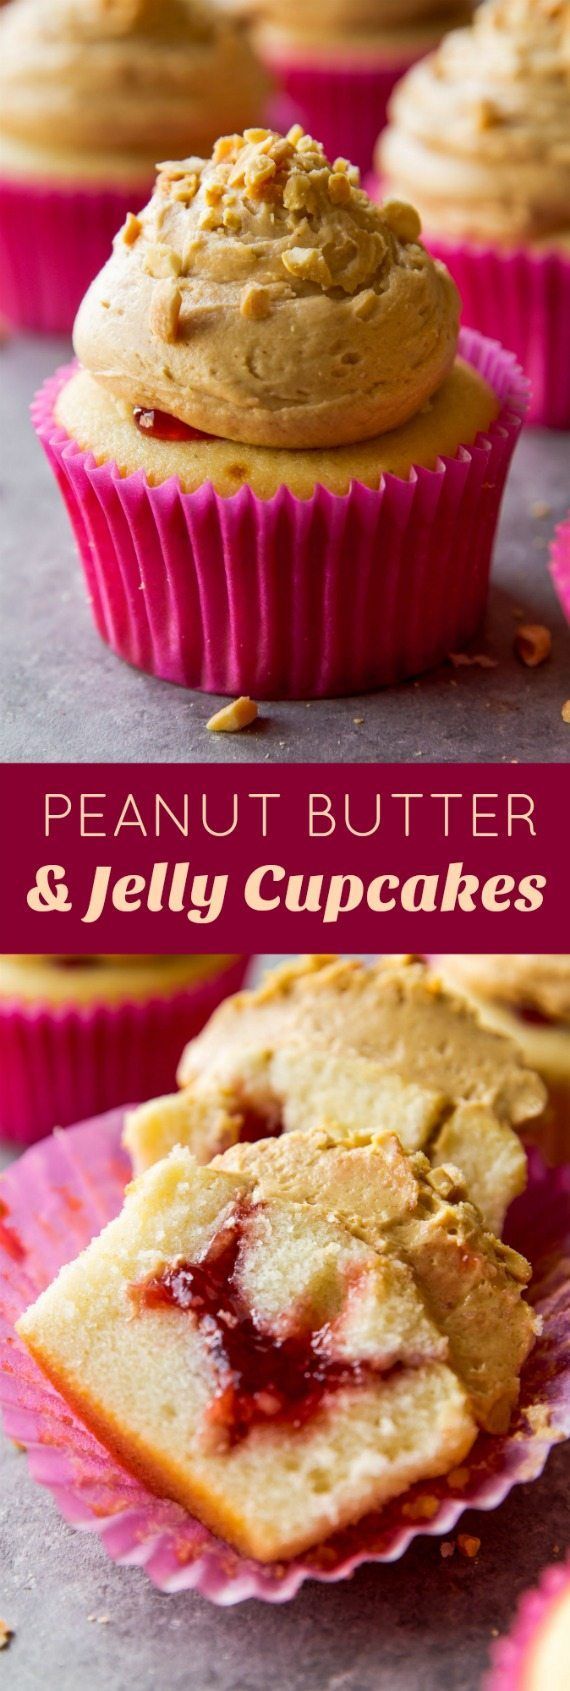 Soft and fluffy vanilla cupcakes topped with peanut butter frosting and filled with your favorite jelly! | Thanksgiving Food & Recipes | Pinterest | Cupcakes, …